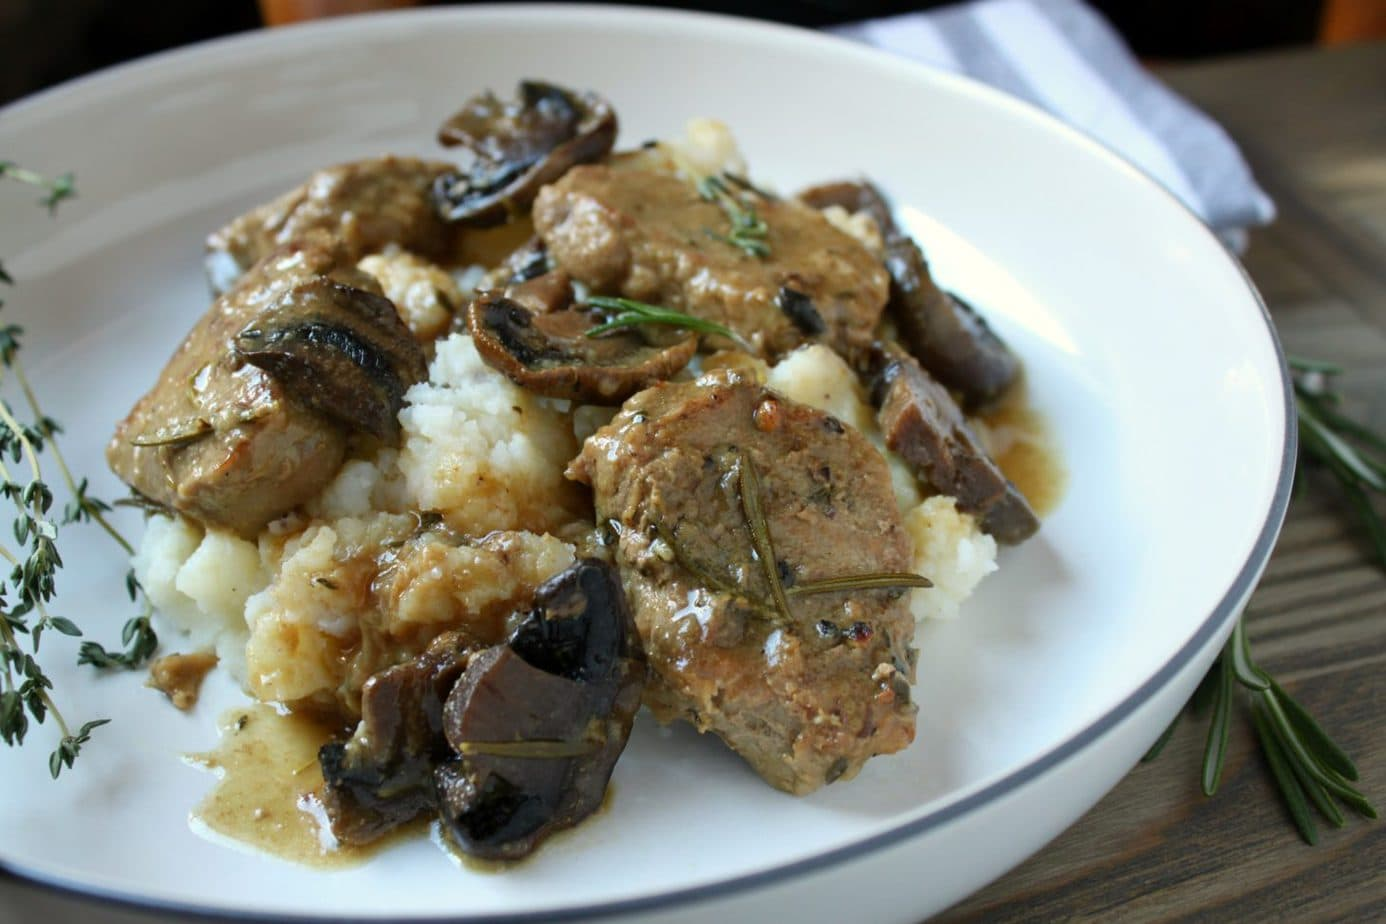 Instant Pot Pork Medallions with herbs and Mushrooms Recipe | We've scoured the internet for some of the best Instant Pot Recipes, and found an amazing assortment! You'll love these handpicked Instant Pot recipes, | Homestead Wishing, Author Kristi Wheeler | https://homesteadwishing.com/instant-pot-recipes/ | instant-pot-recipes #instantpotrecipes #recipes #pressurecookerrecipes #pressurecooker